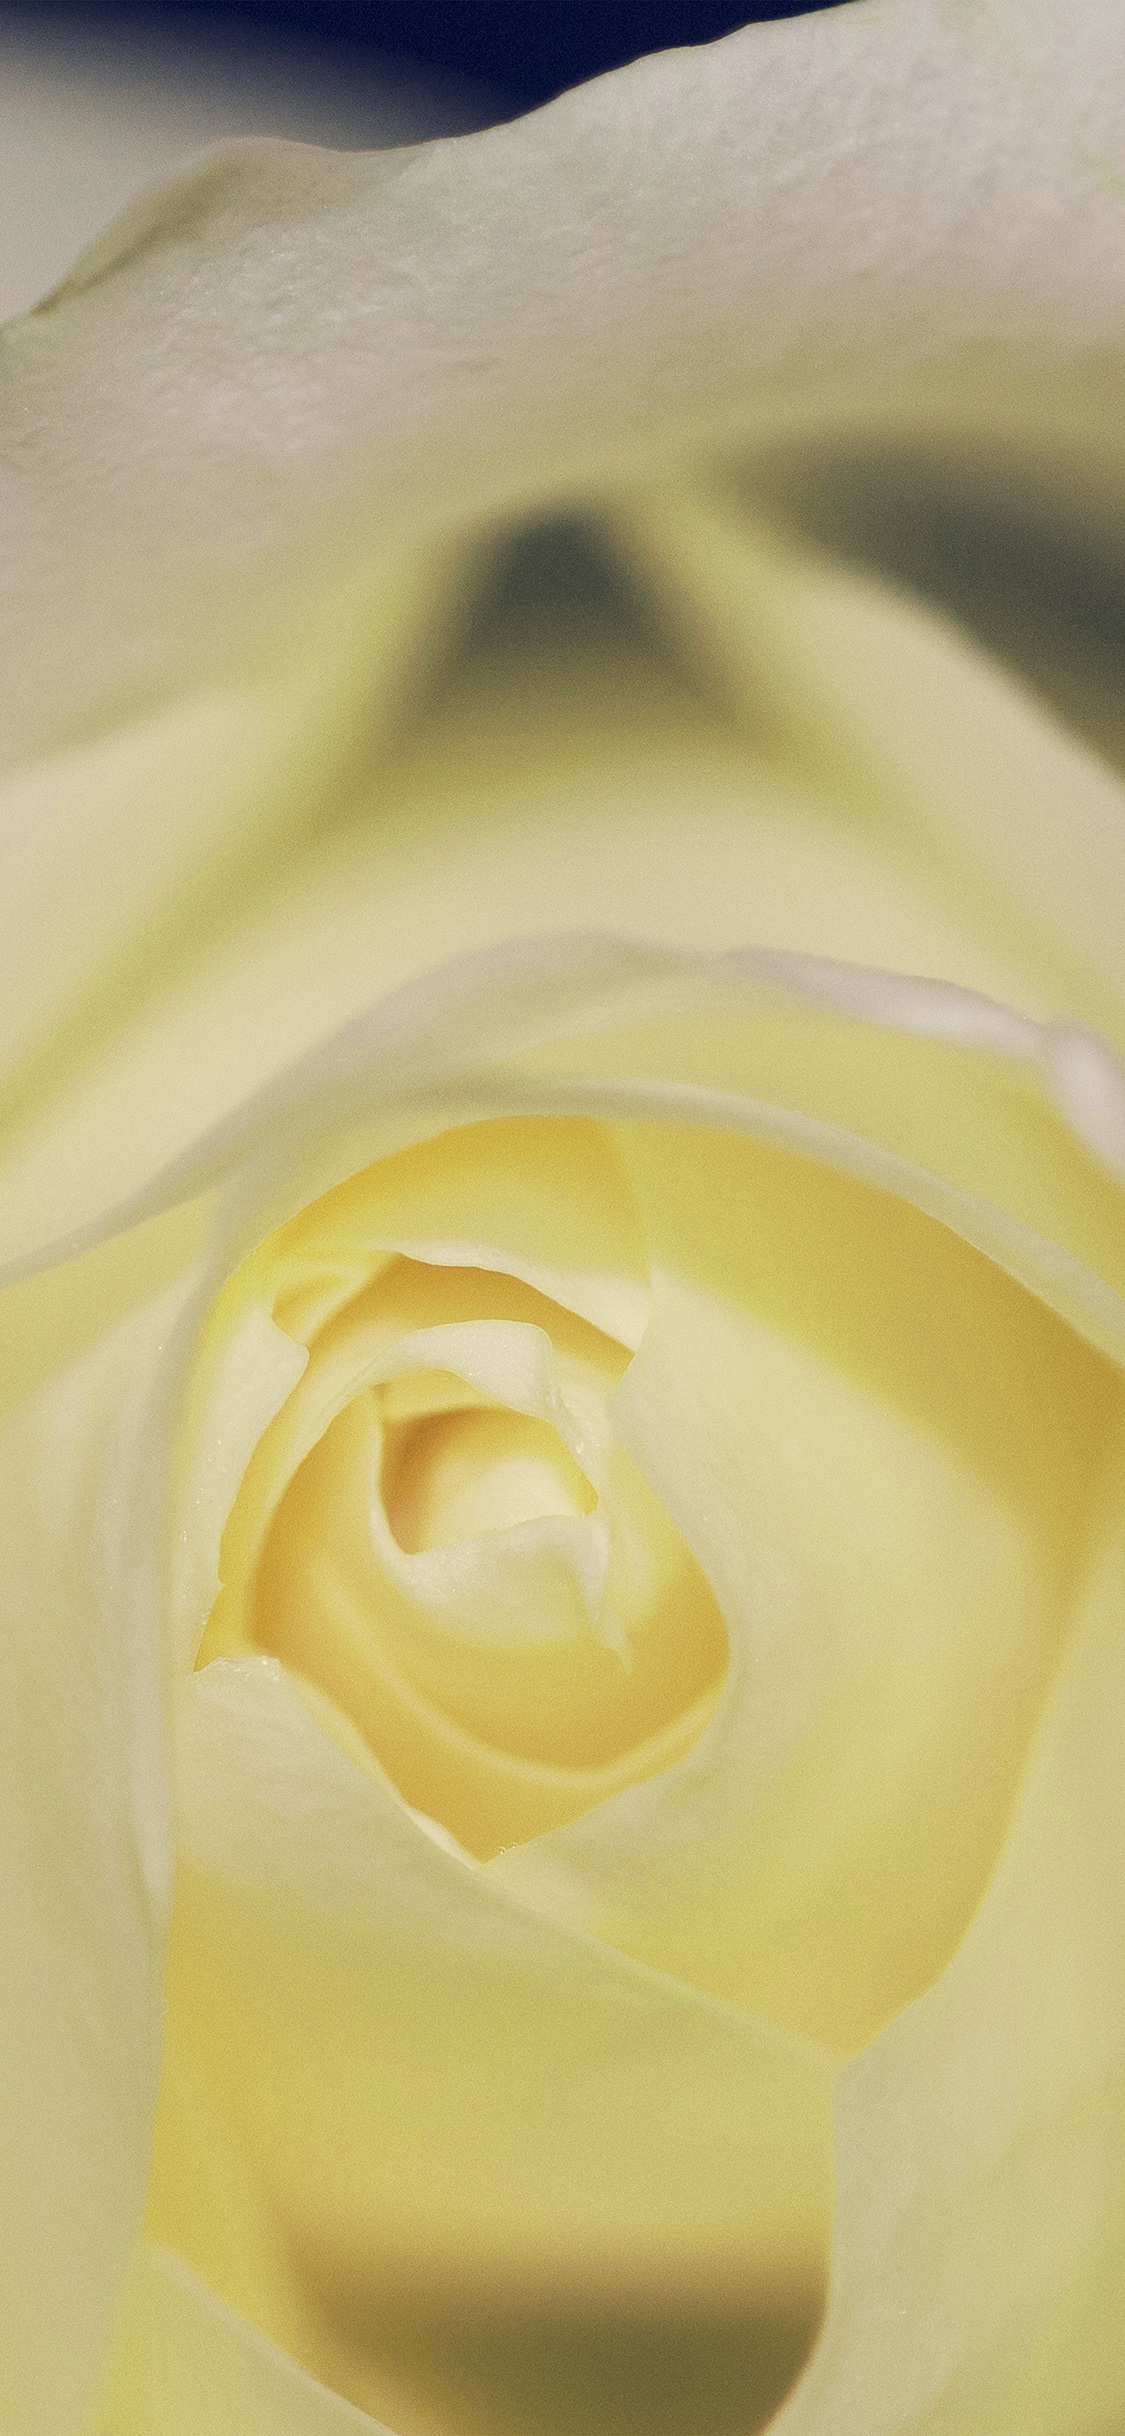 Iphone11papers Com Iphone11 Wallpaper Nk79 Flower Yellow Rose Love